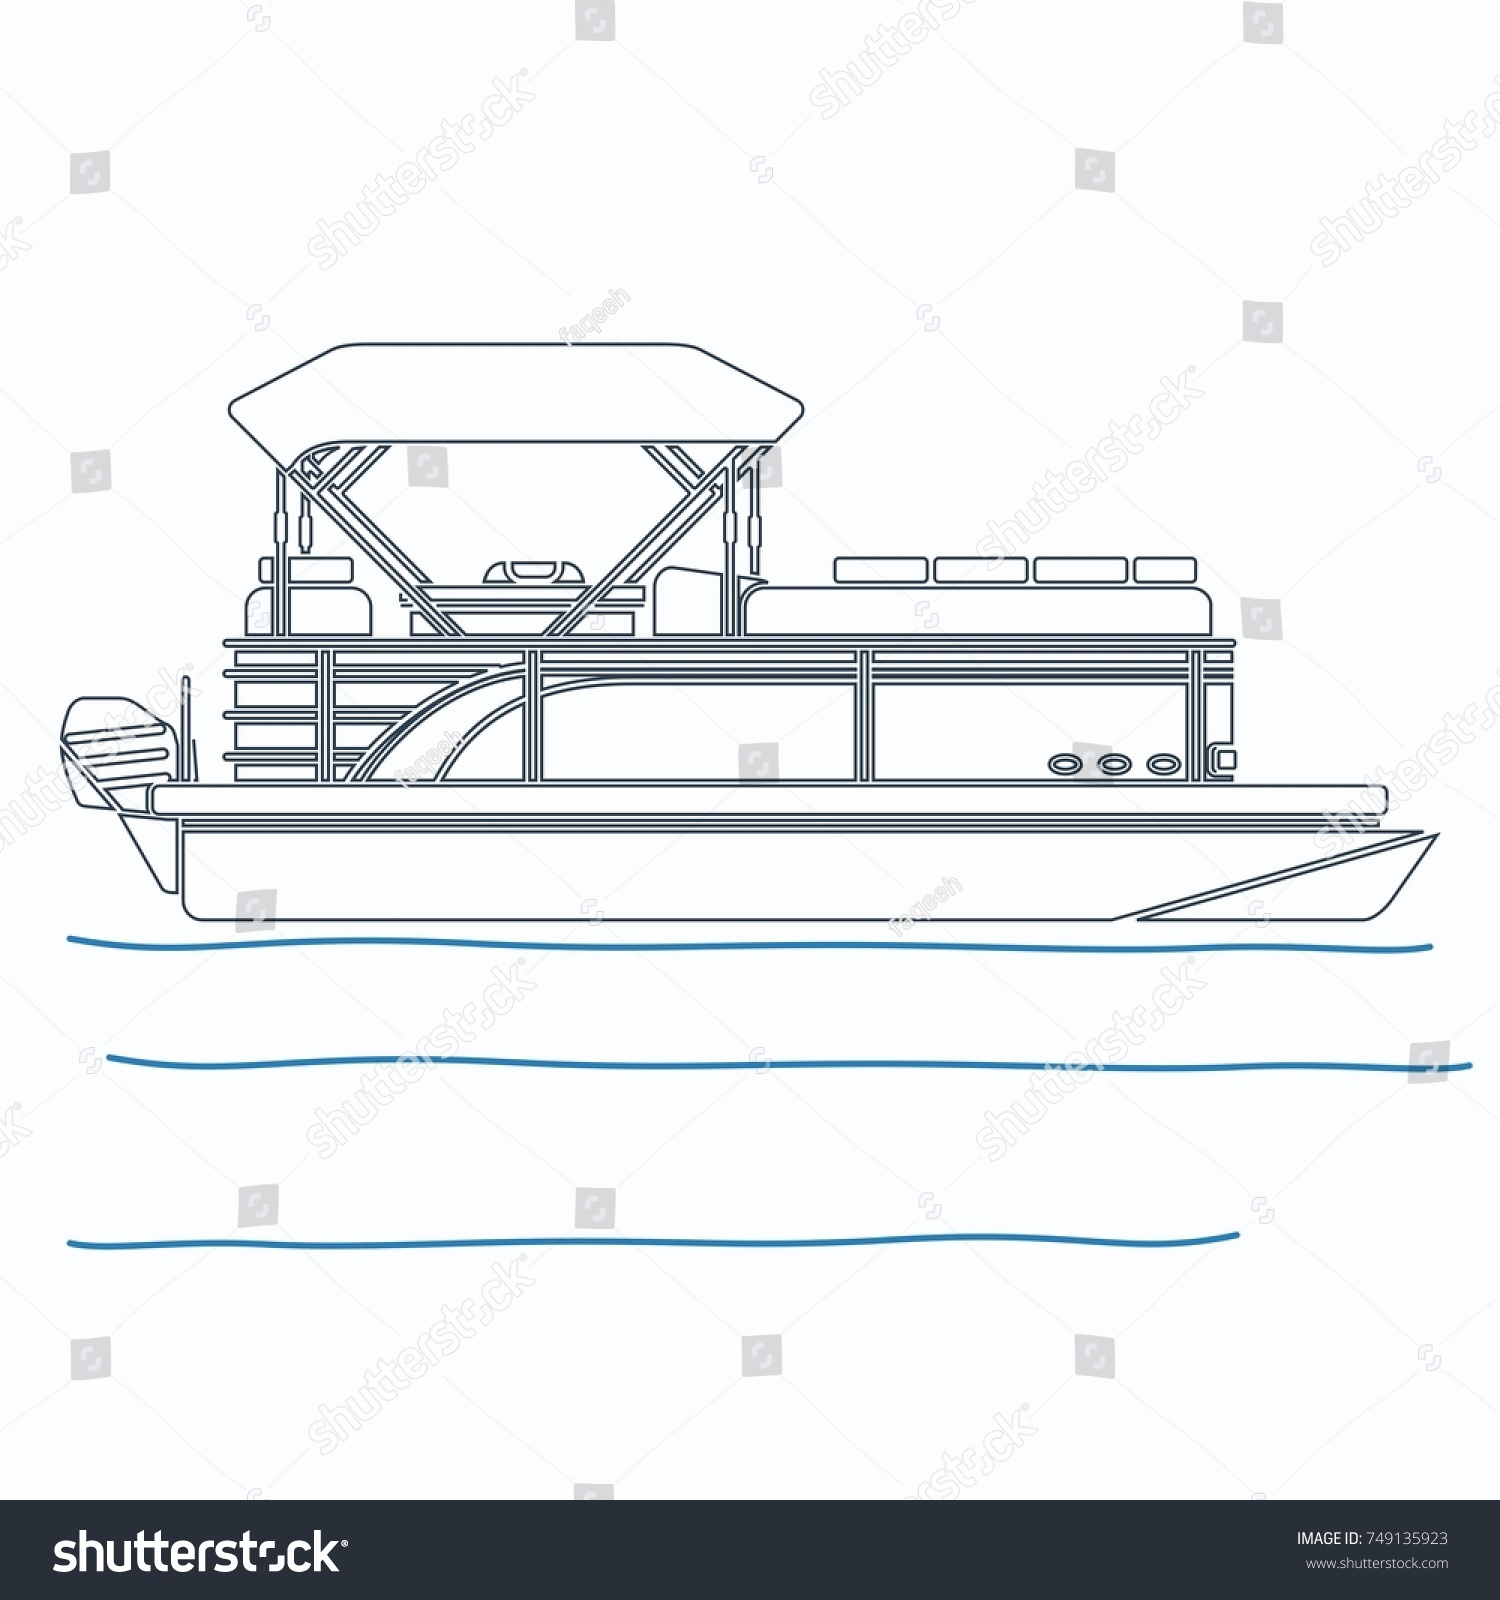 hight resolution of editable pontoon boat vector illustration in outline style